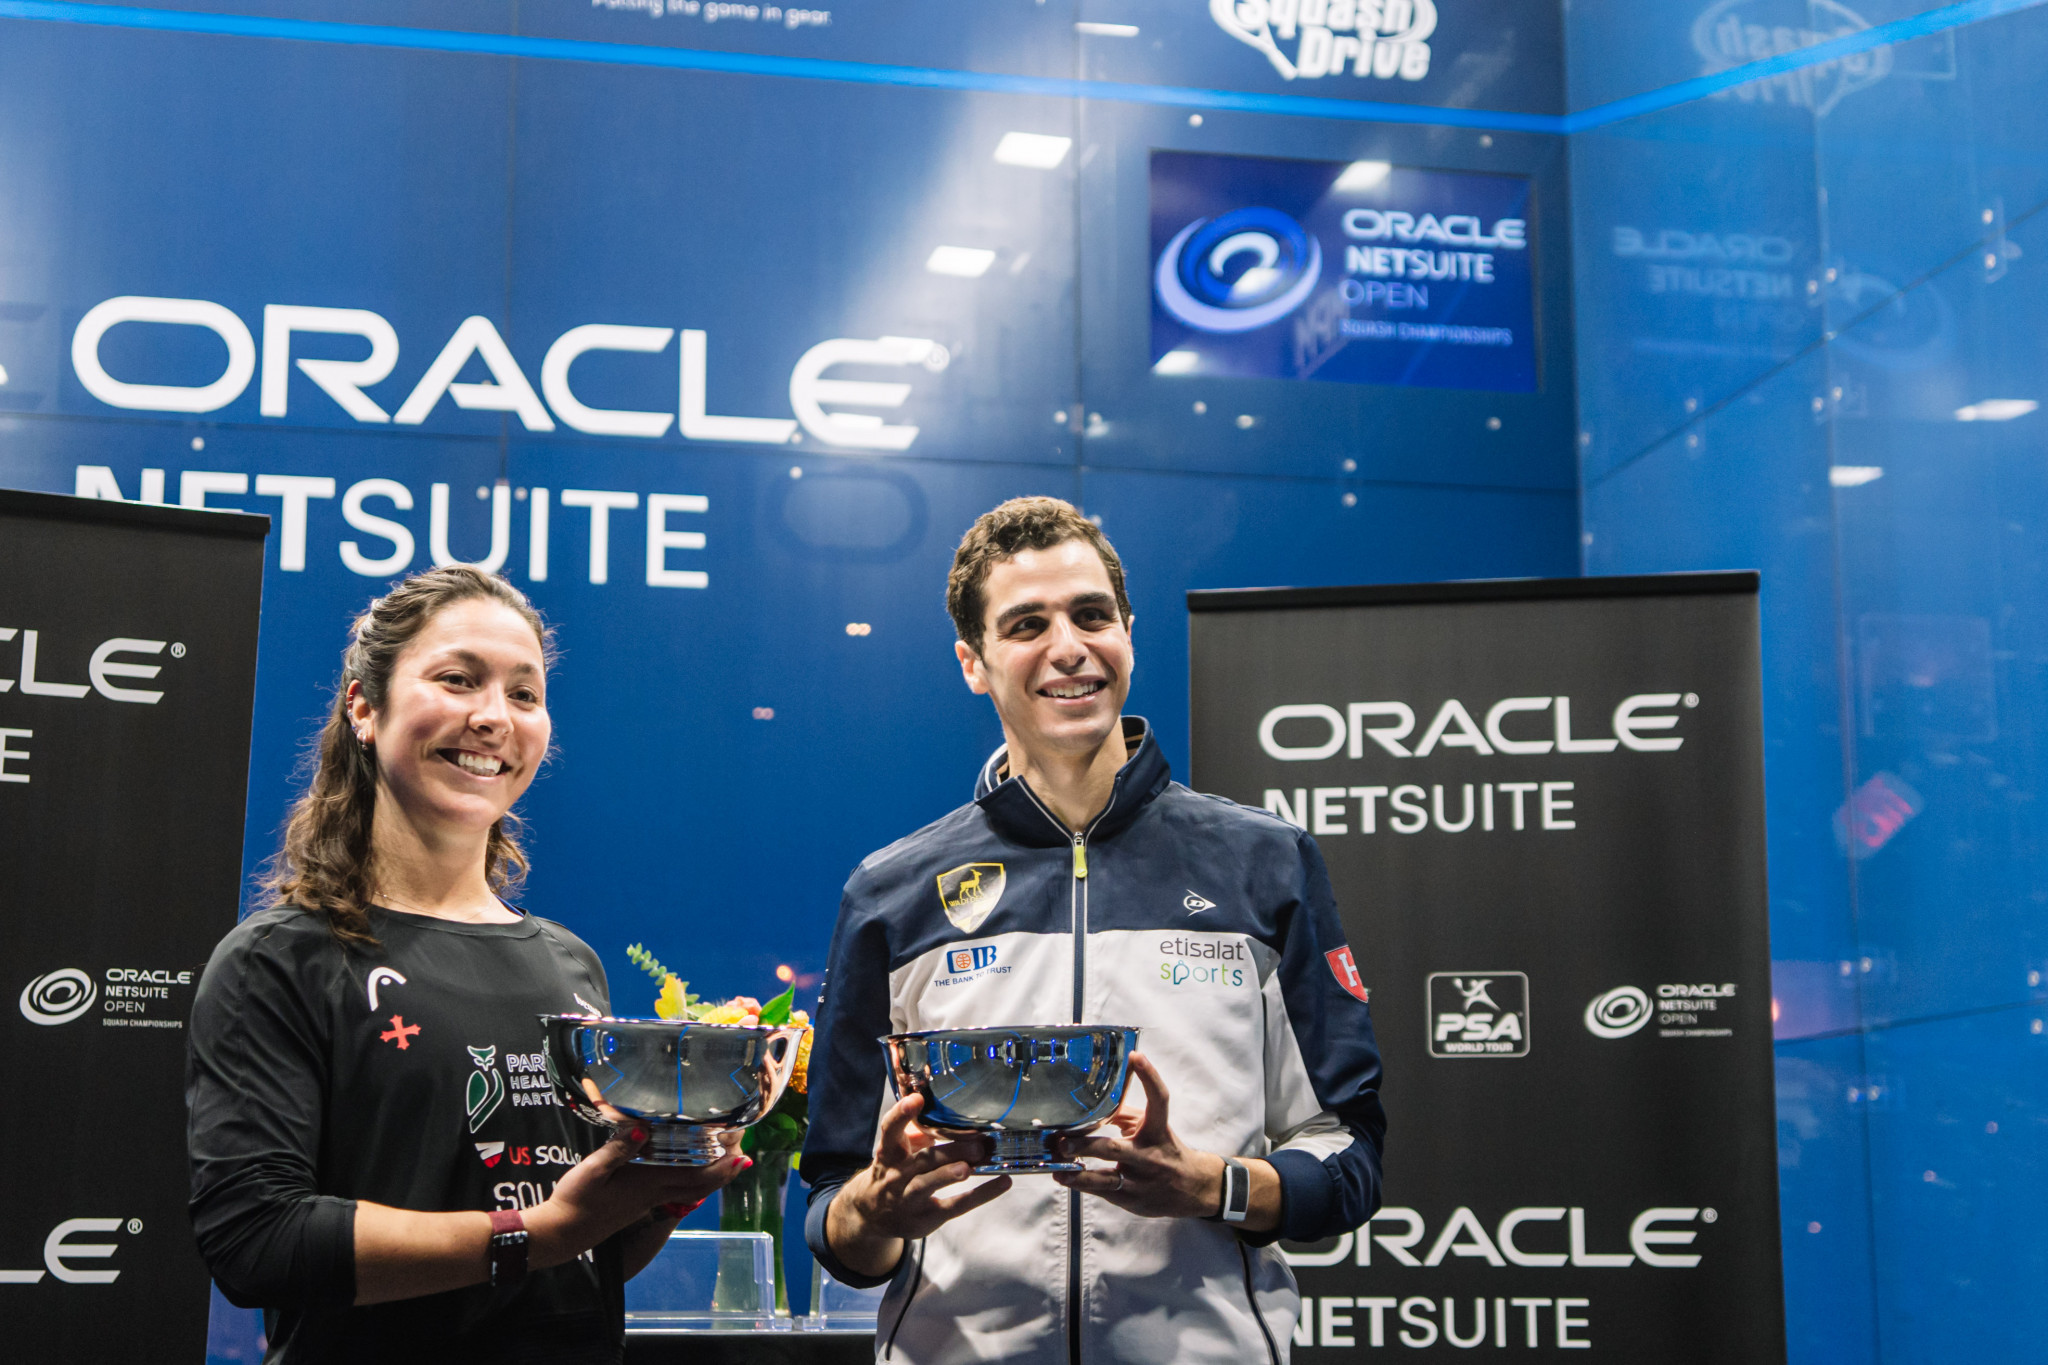 Farag continues fine form to win Oracle Netsuite Open, while Sobhy claims home victory